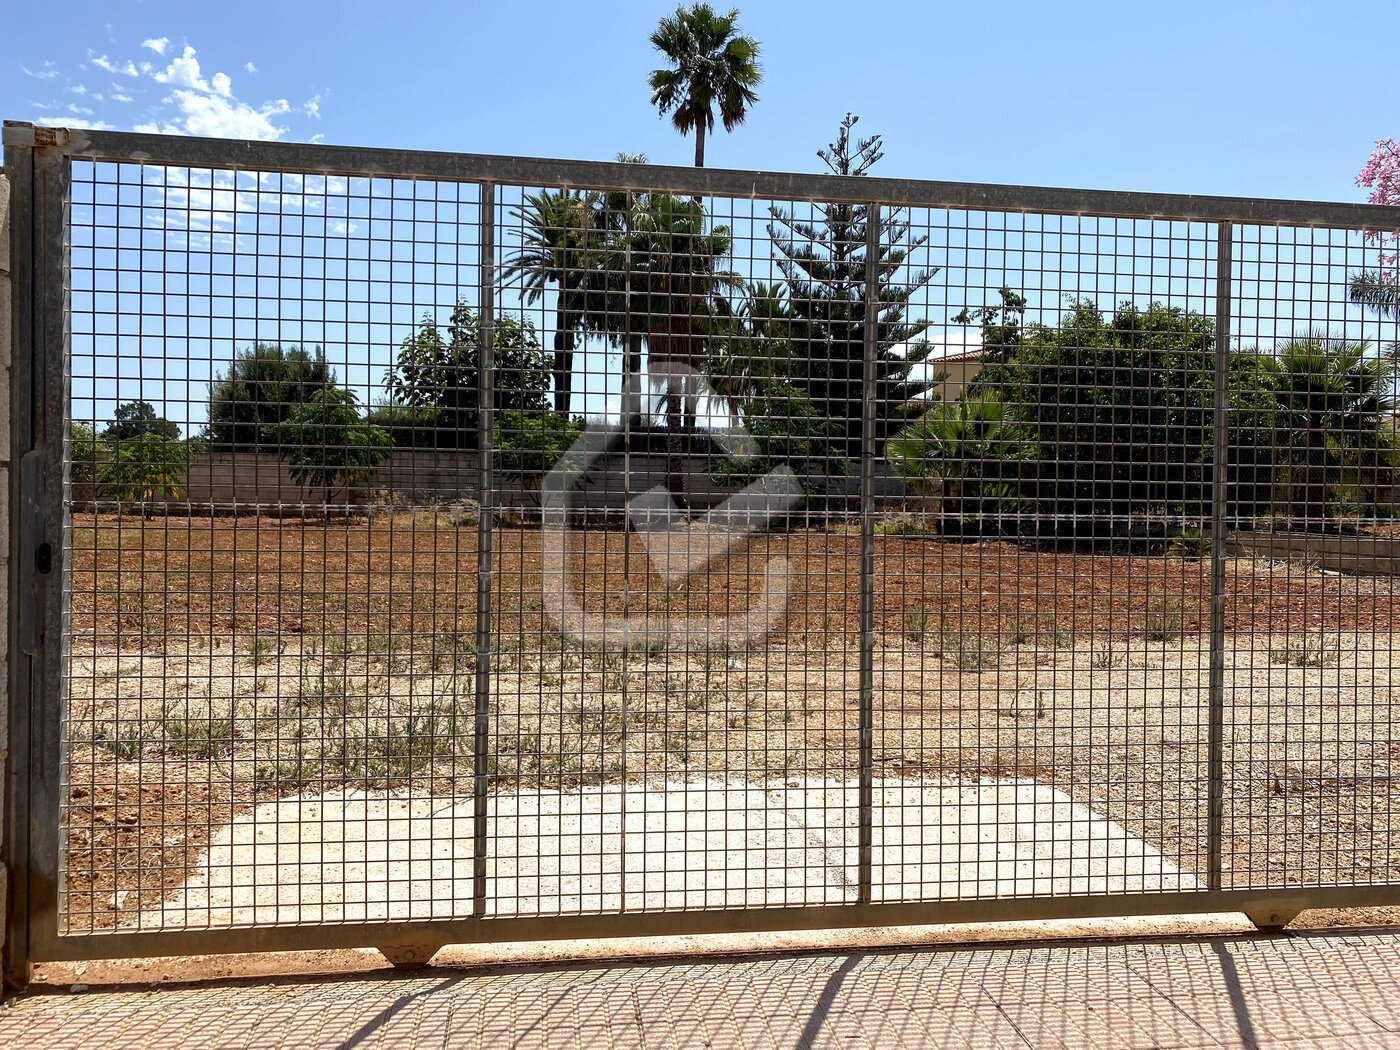 Photo  number 5: Land / Ground in Sale in Ondara, Area Centro. Ref. 5-36-14905